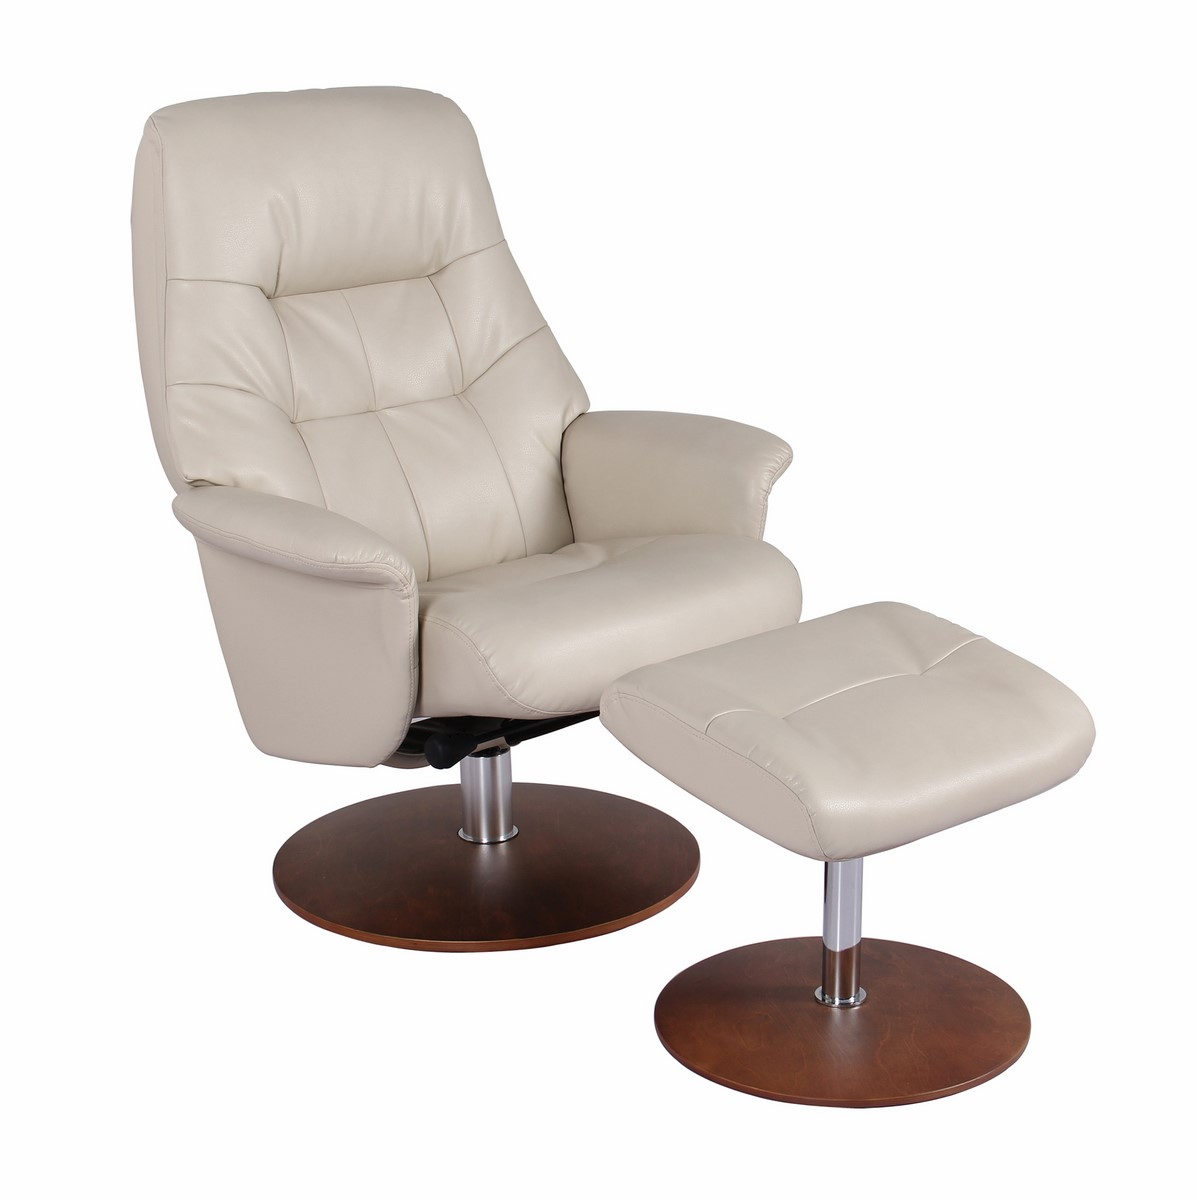 Sensational Carter Ultra Synthetic Color Taupe Swivel Recliner Chair Ncnpc Chair Design For Home Ncnpcorg